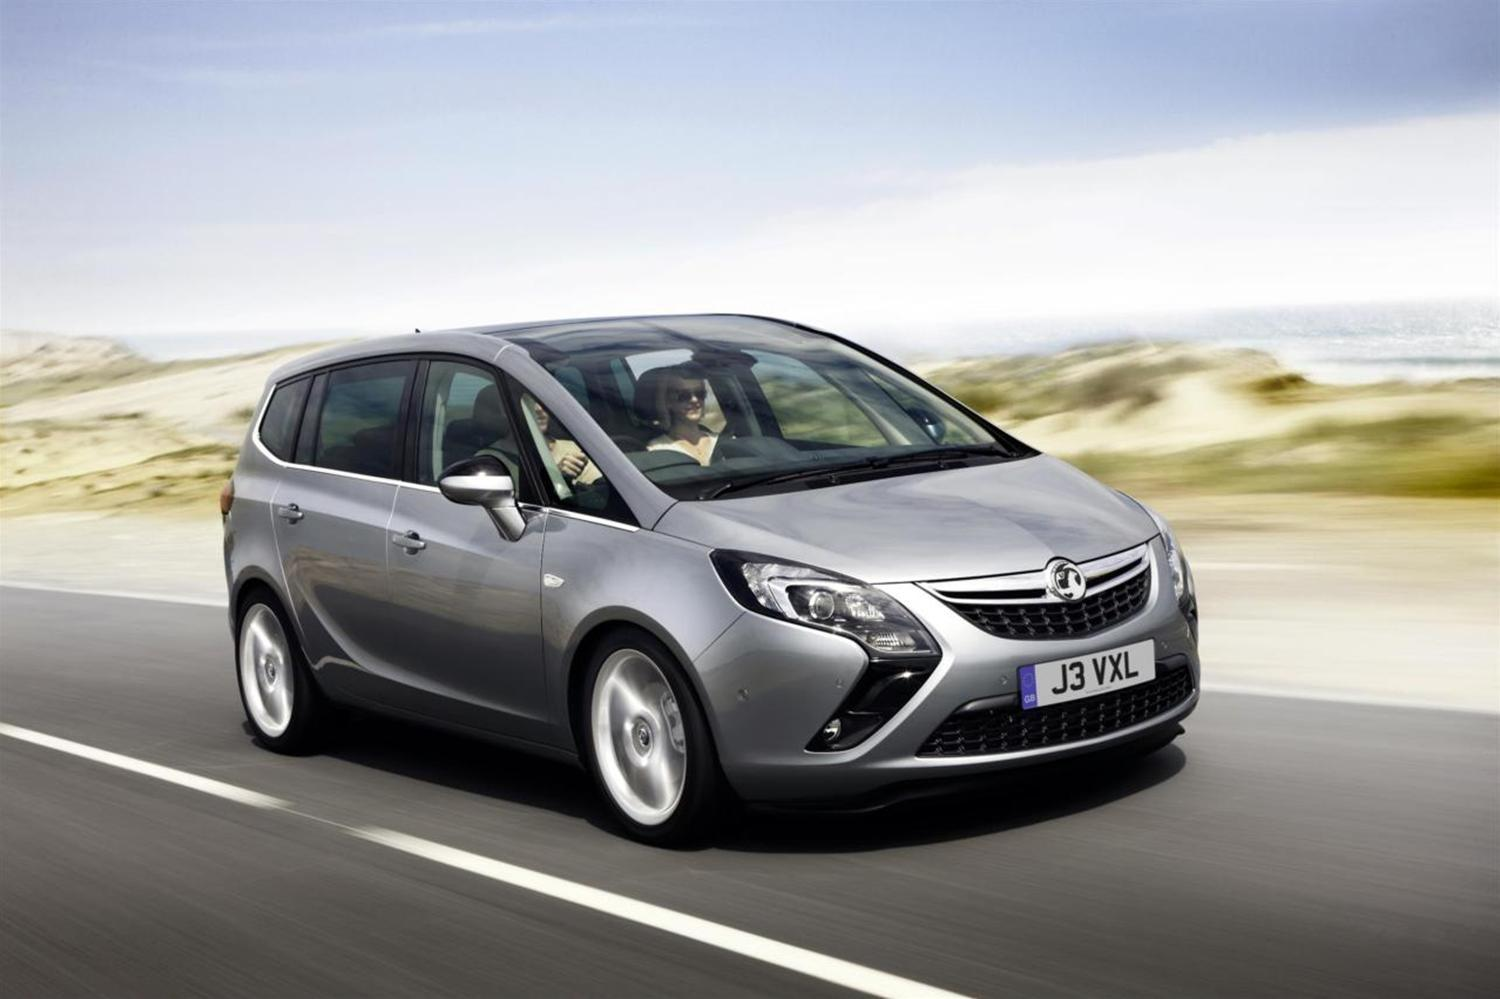 Is the Vauxhall Zafira Tourer the best MPV in 2012?